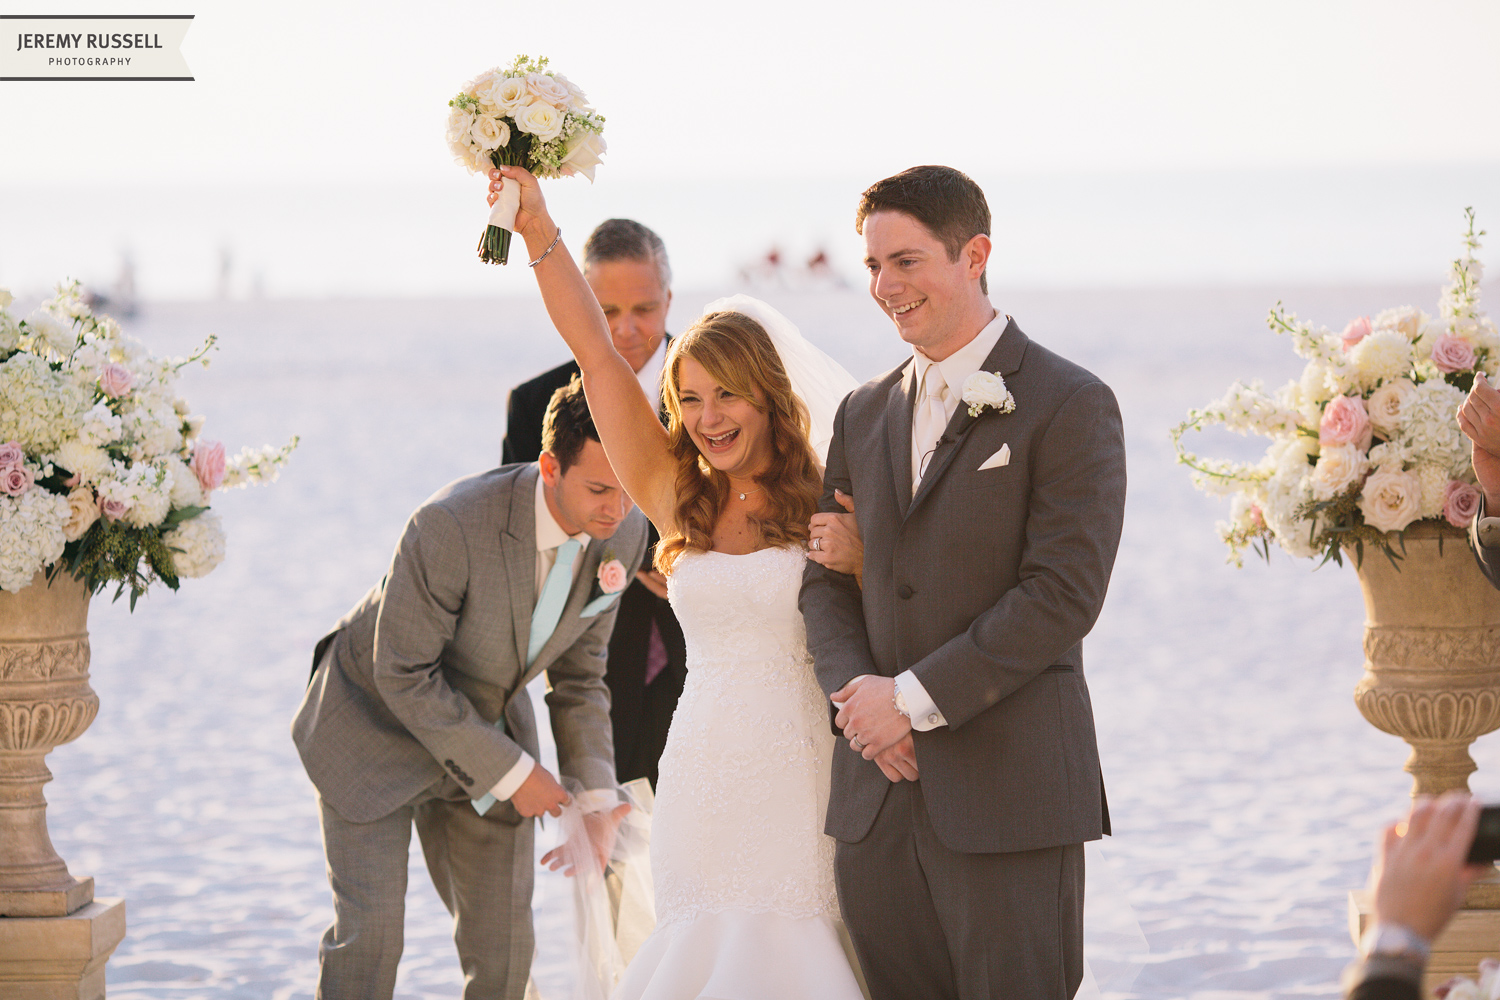 Jeremy-Russell-13-Florida-Beach-Wedding-050.jpg